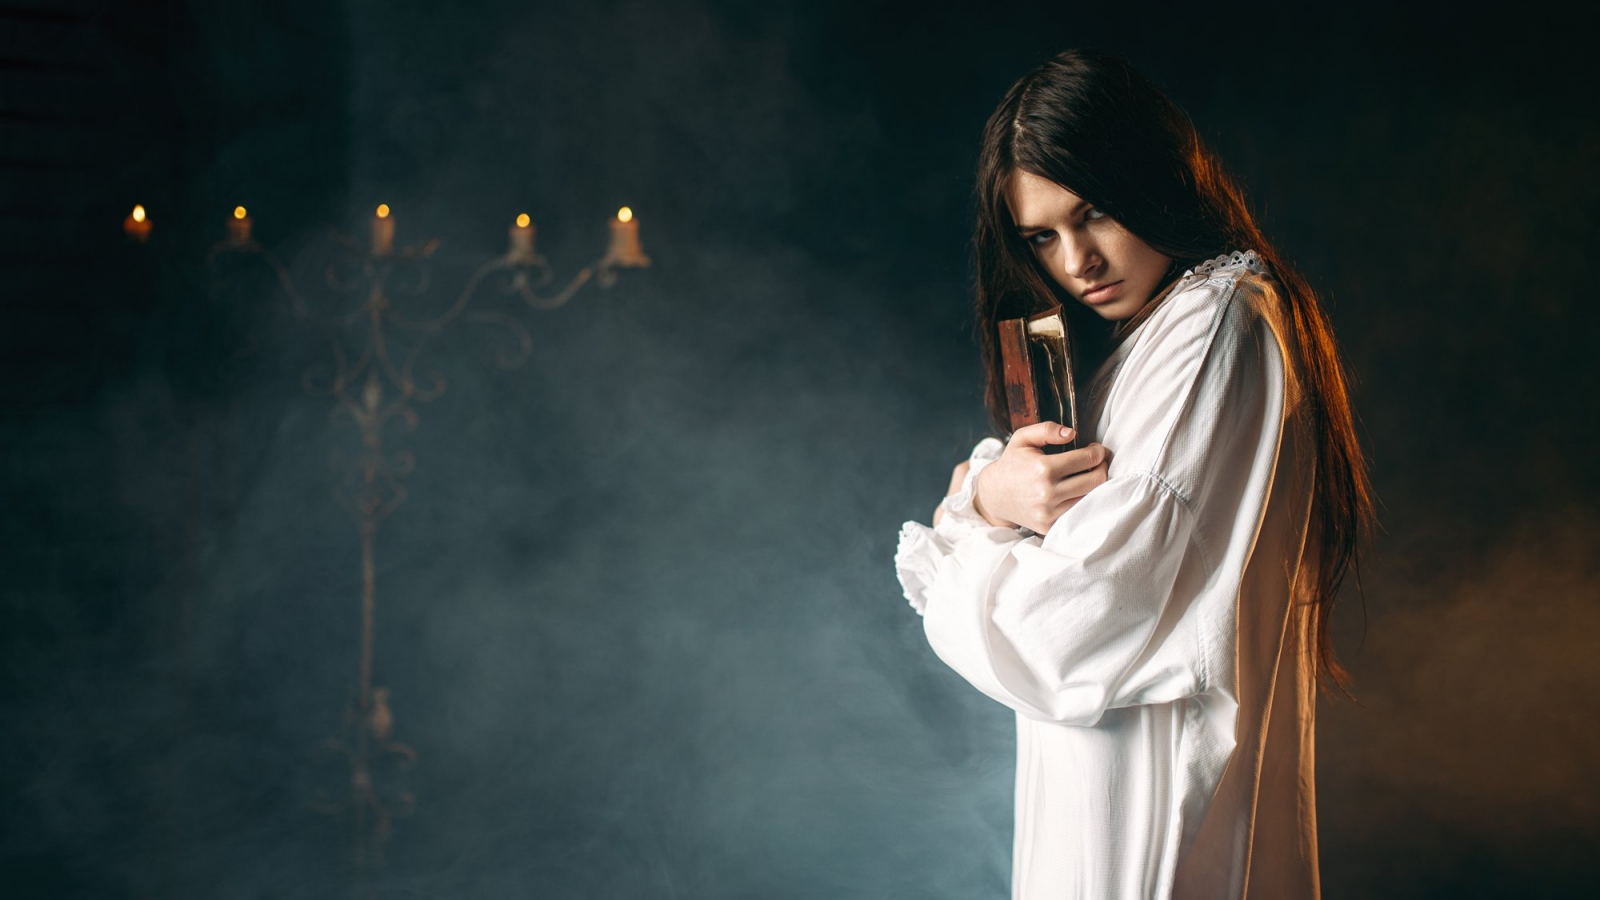 Ghost Hunting – Will The Price Of Fame Be Your Soul?